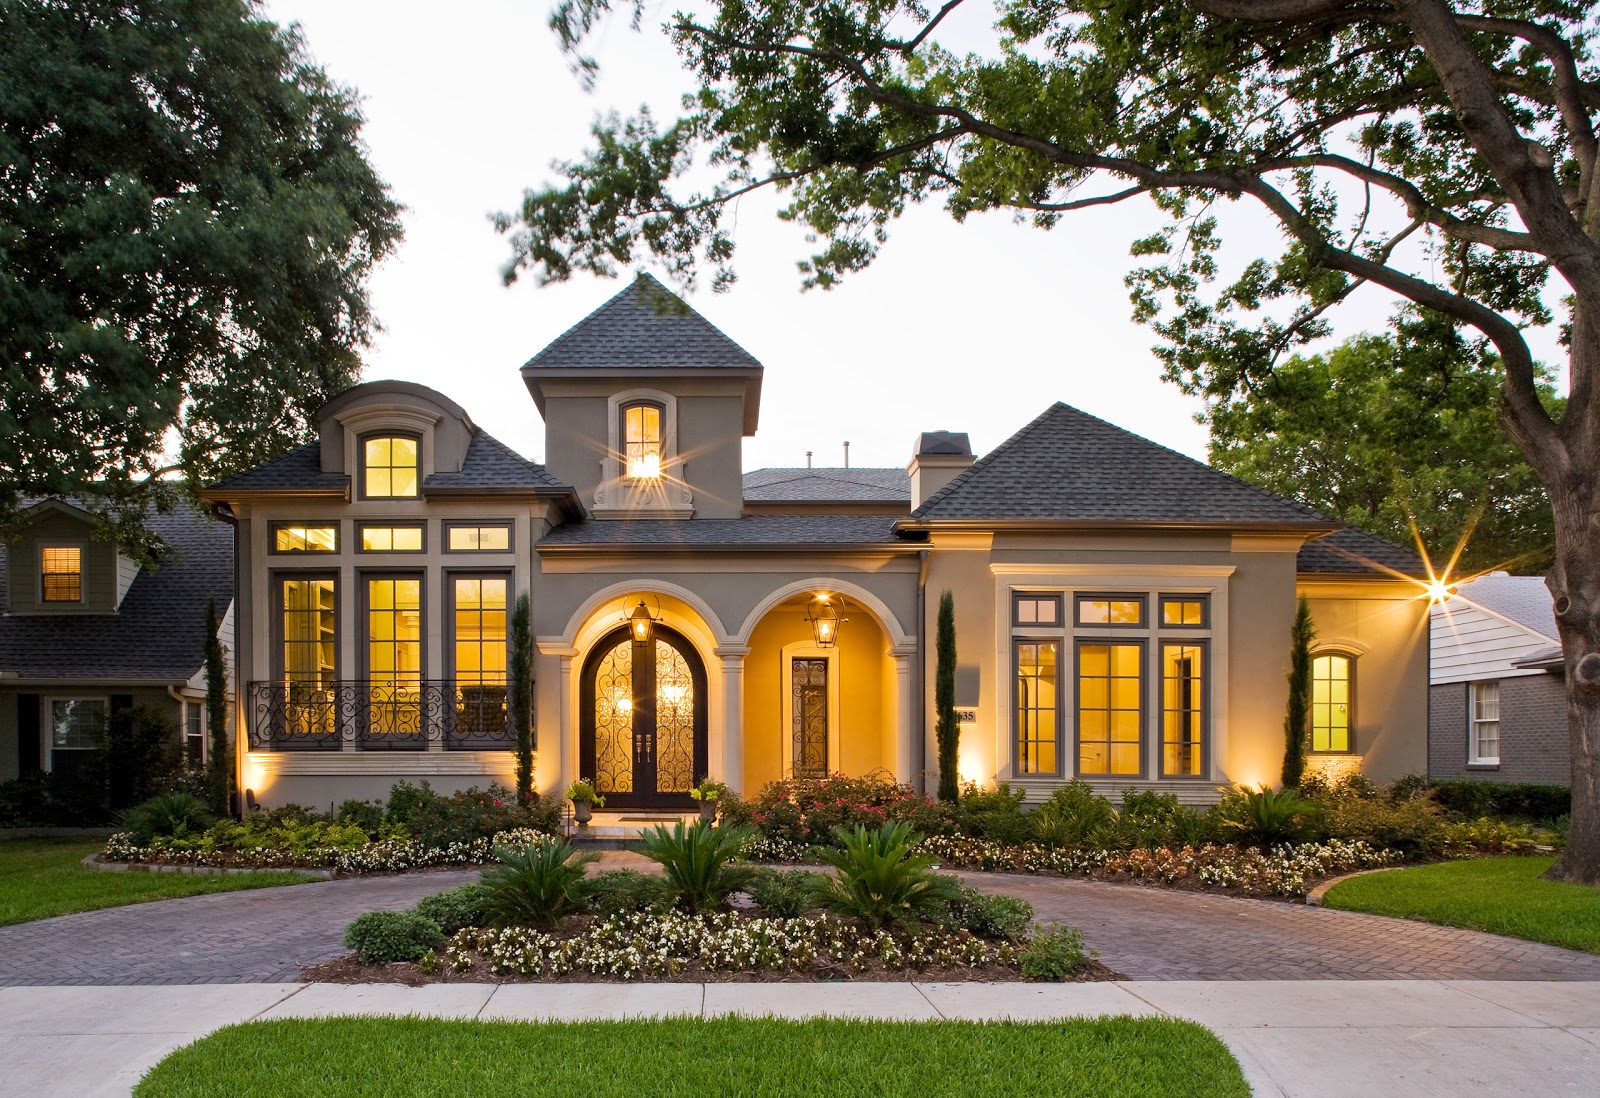 Home design ideas pictures exterior paint house pictures for Exterior home lighting design